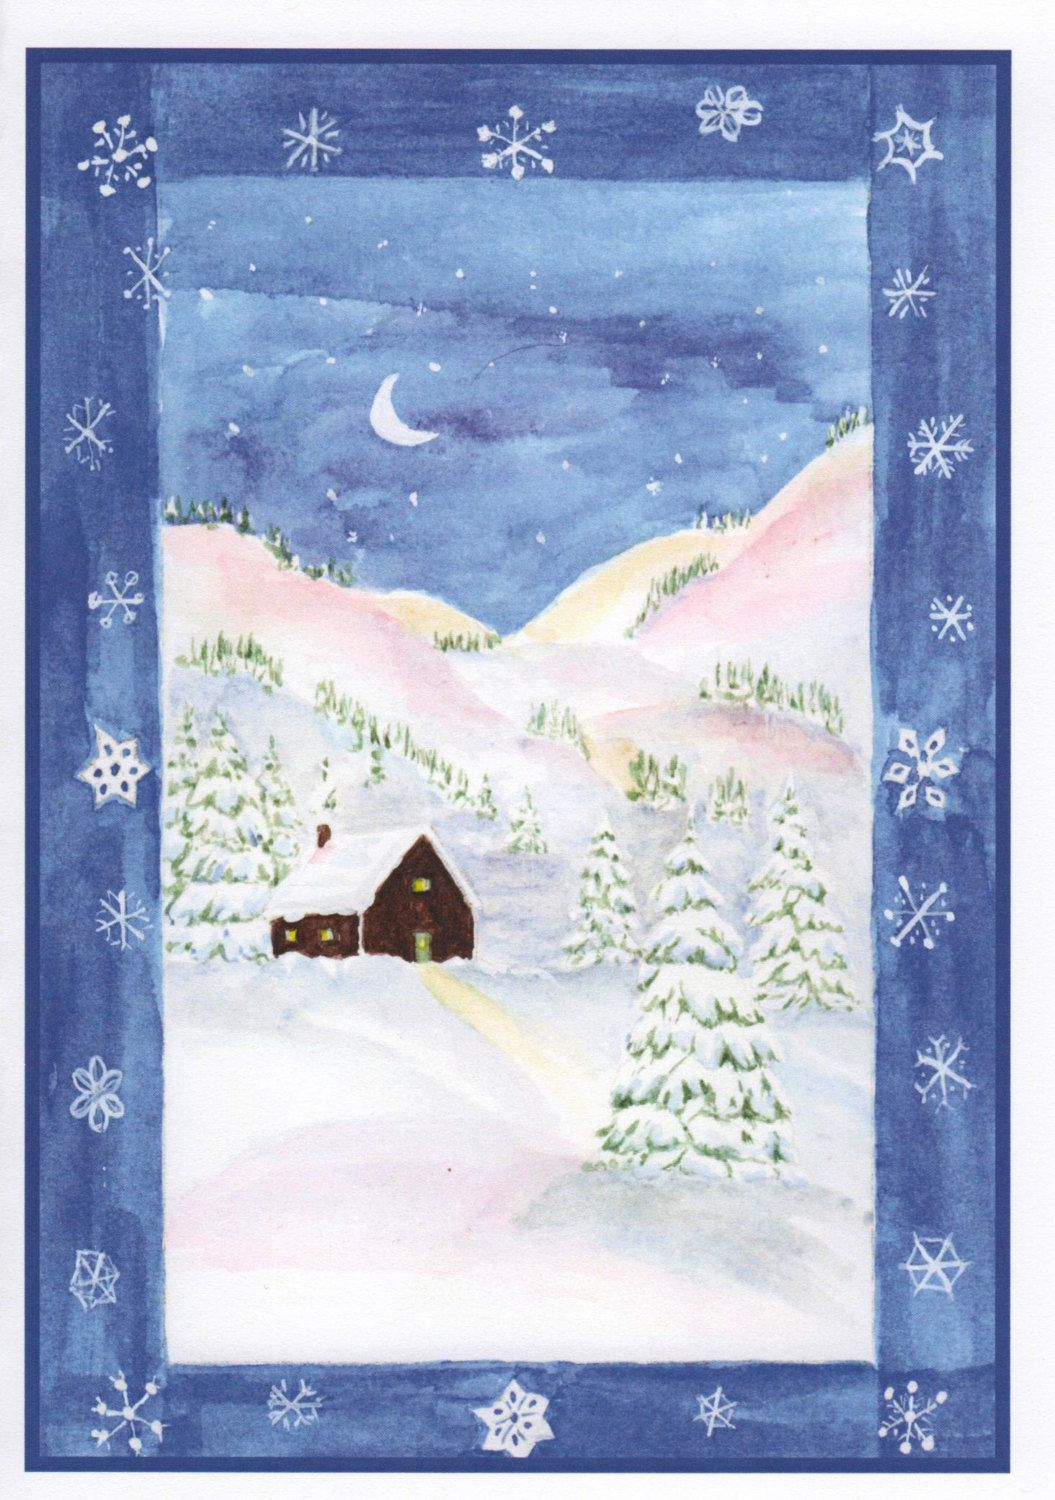 Mountain Christmas Cards.Christmas Card Winter Cabin In Mountains Inside Of Card